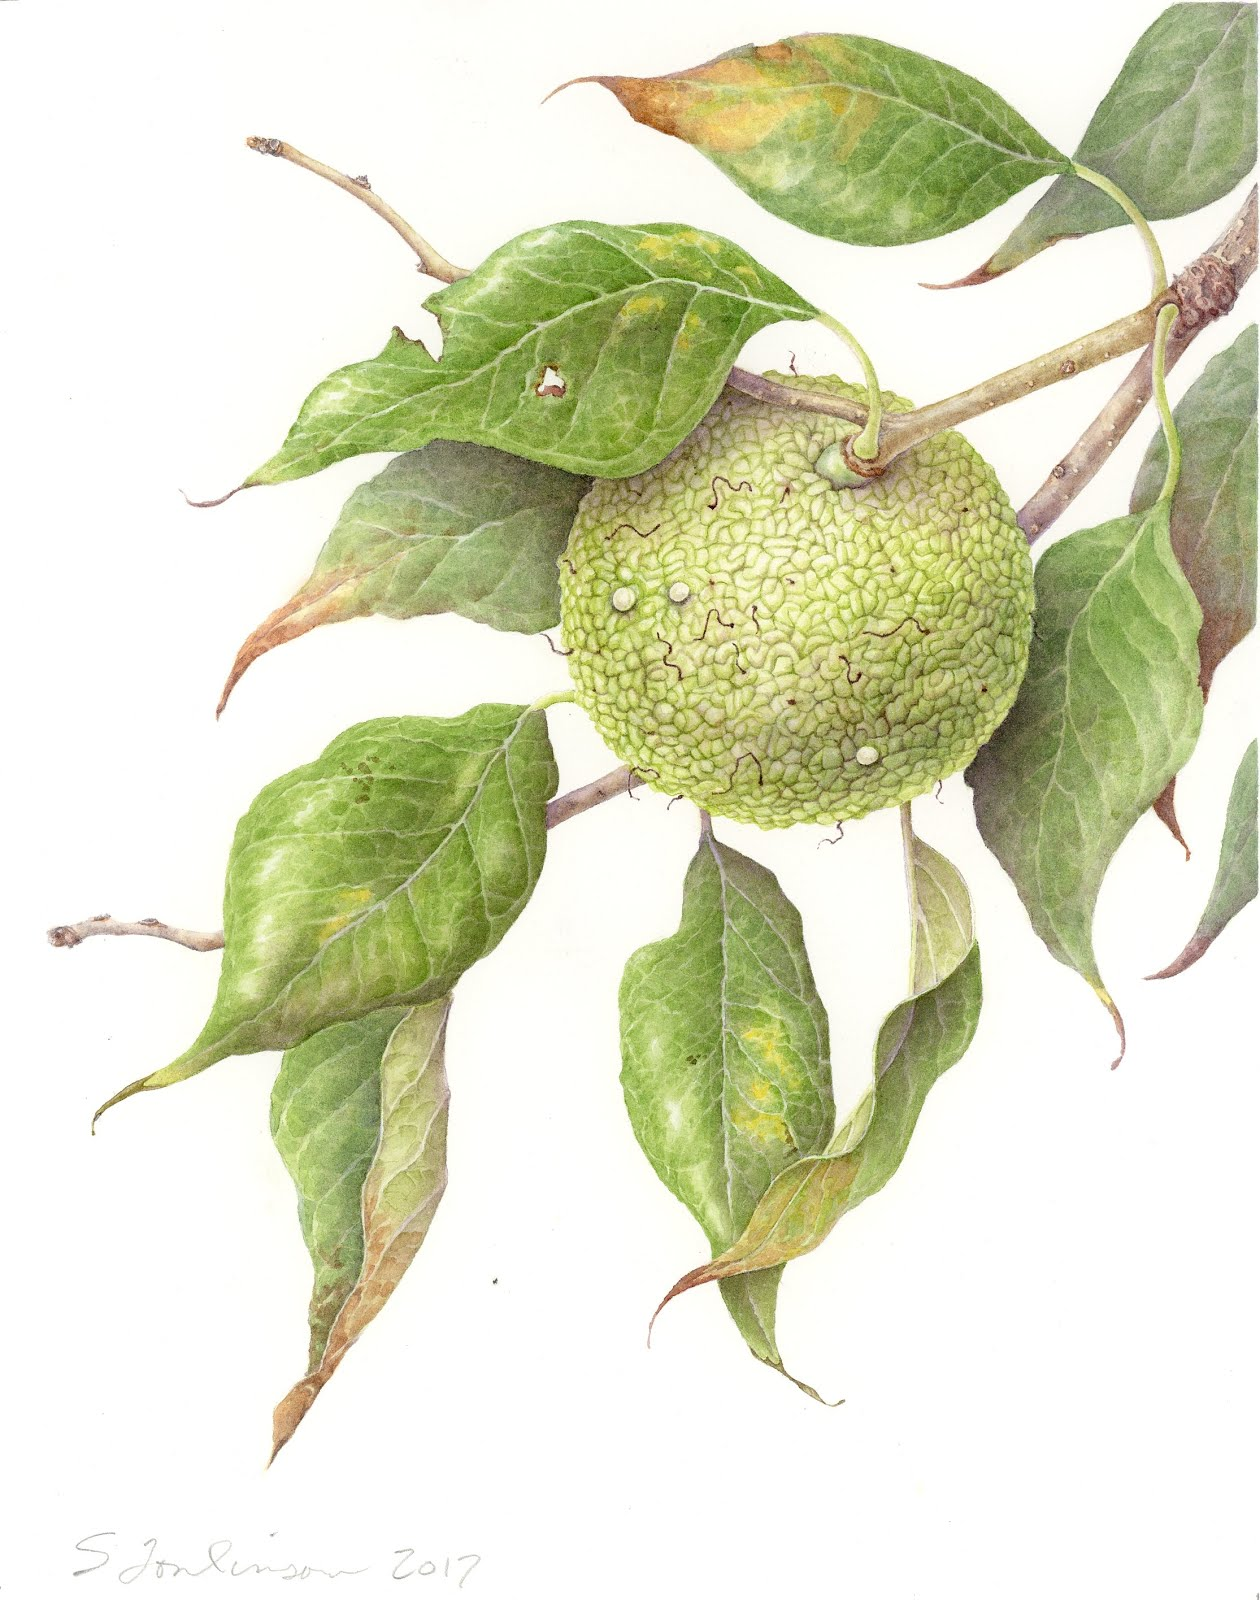 My website: Susan Tomlinson Botanical Art